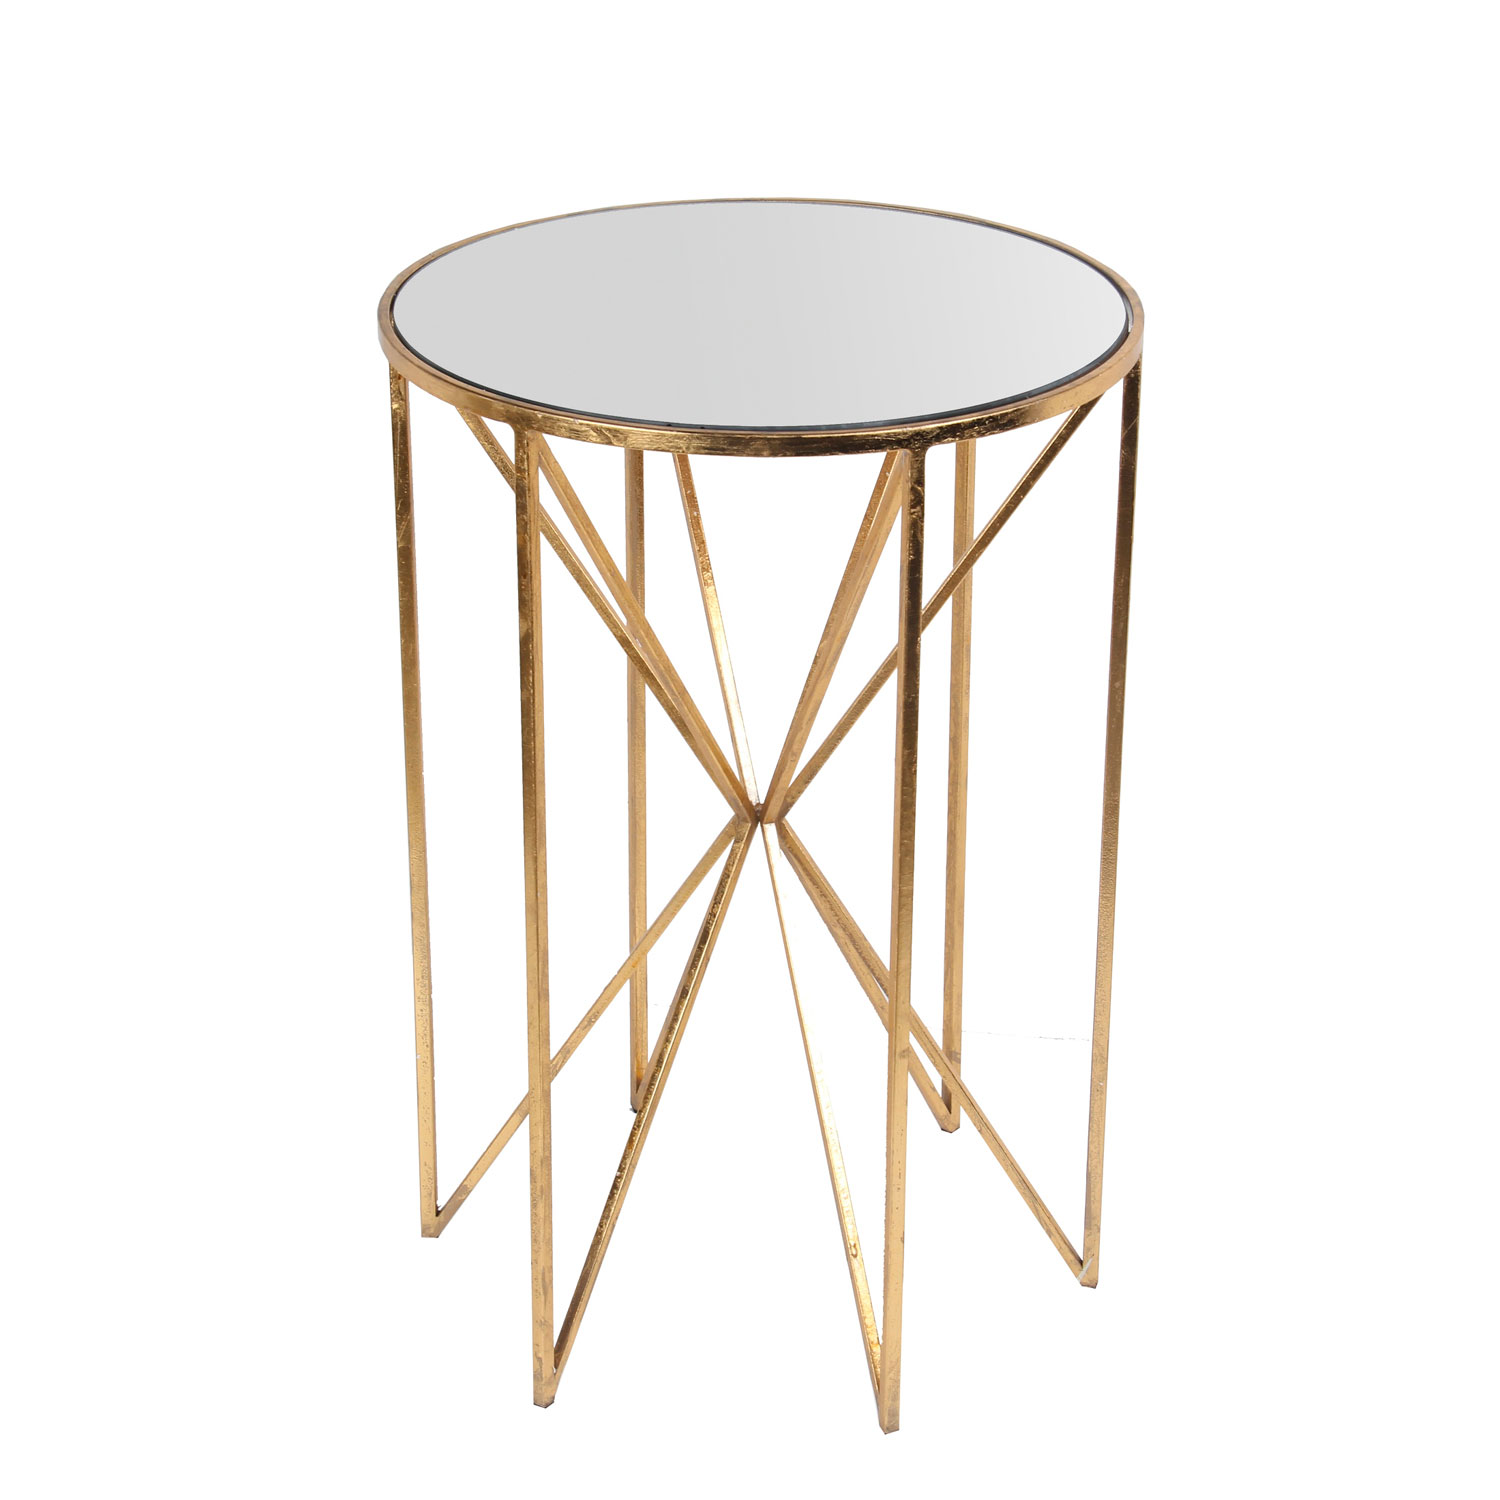 privilege gold leaf accent table bellacor hover zoom target leather sofa patio dining furniture family room decorating ideas restoration hardware small silver lamps lucite acrylic